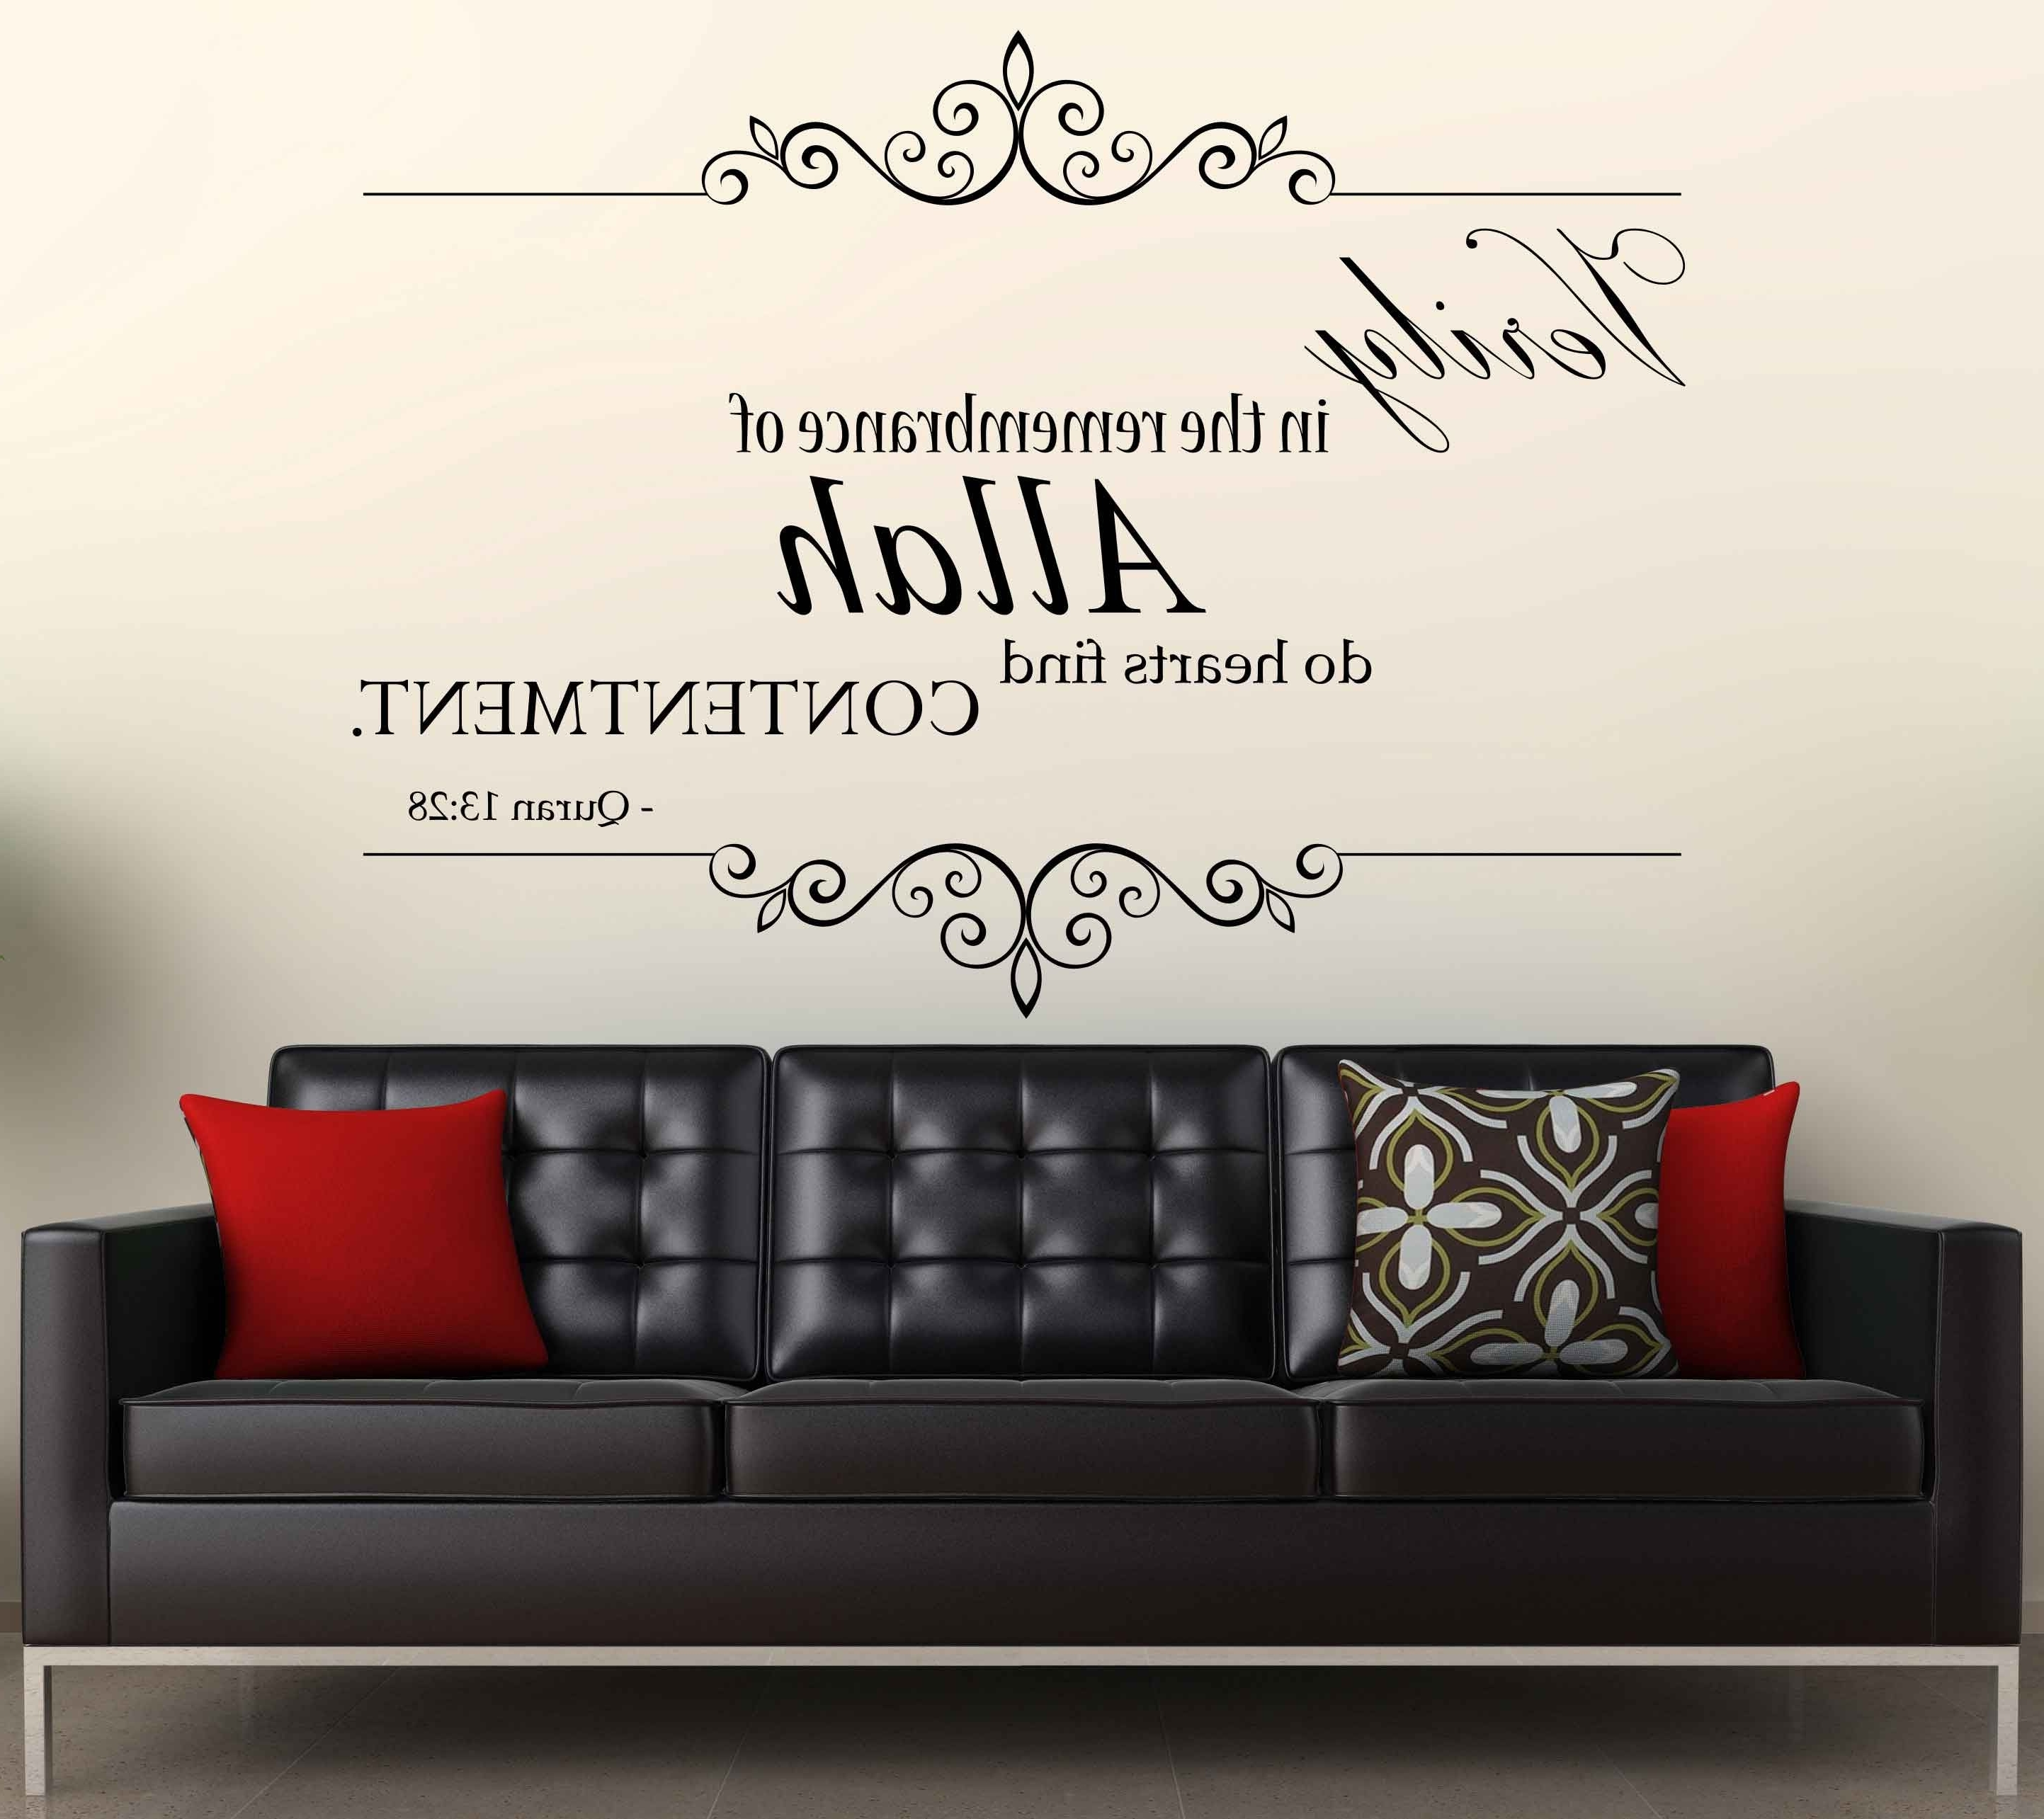 Zama Designs – Verily In The Remembrance Of Allah Islamic Wall Art Throughout Fashionable Islamic Wall Art (View 20 of 20)